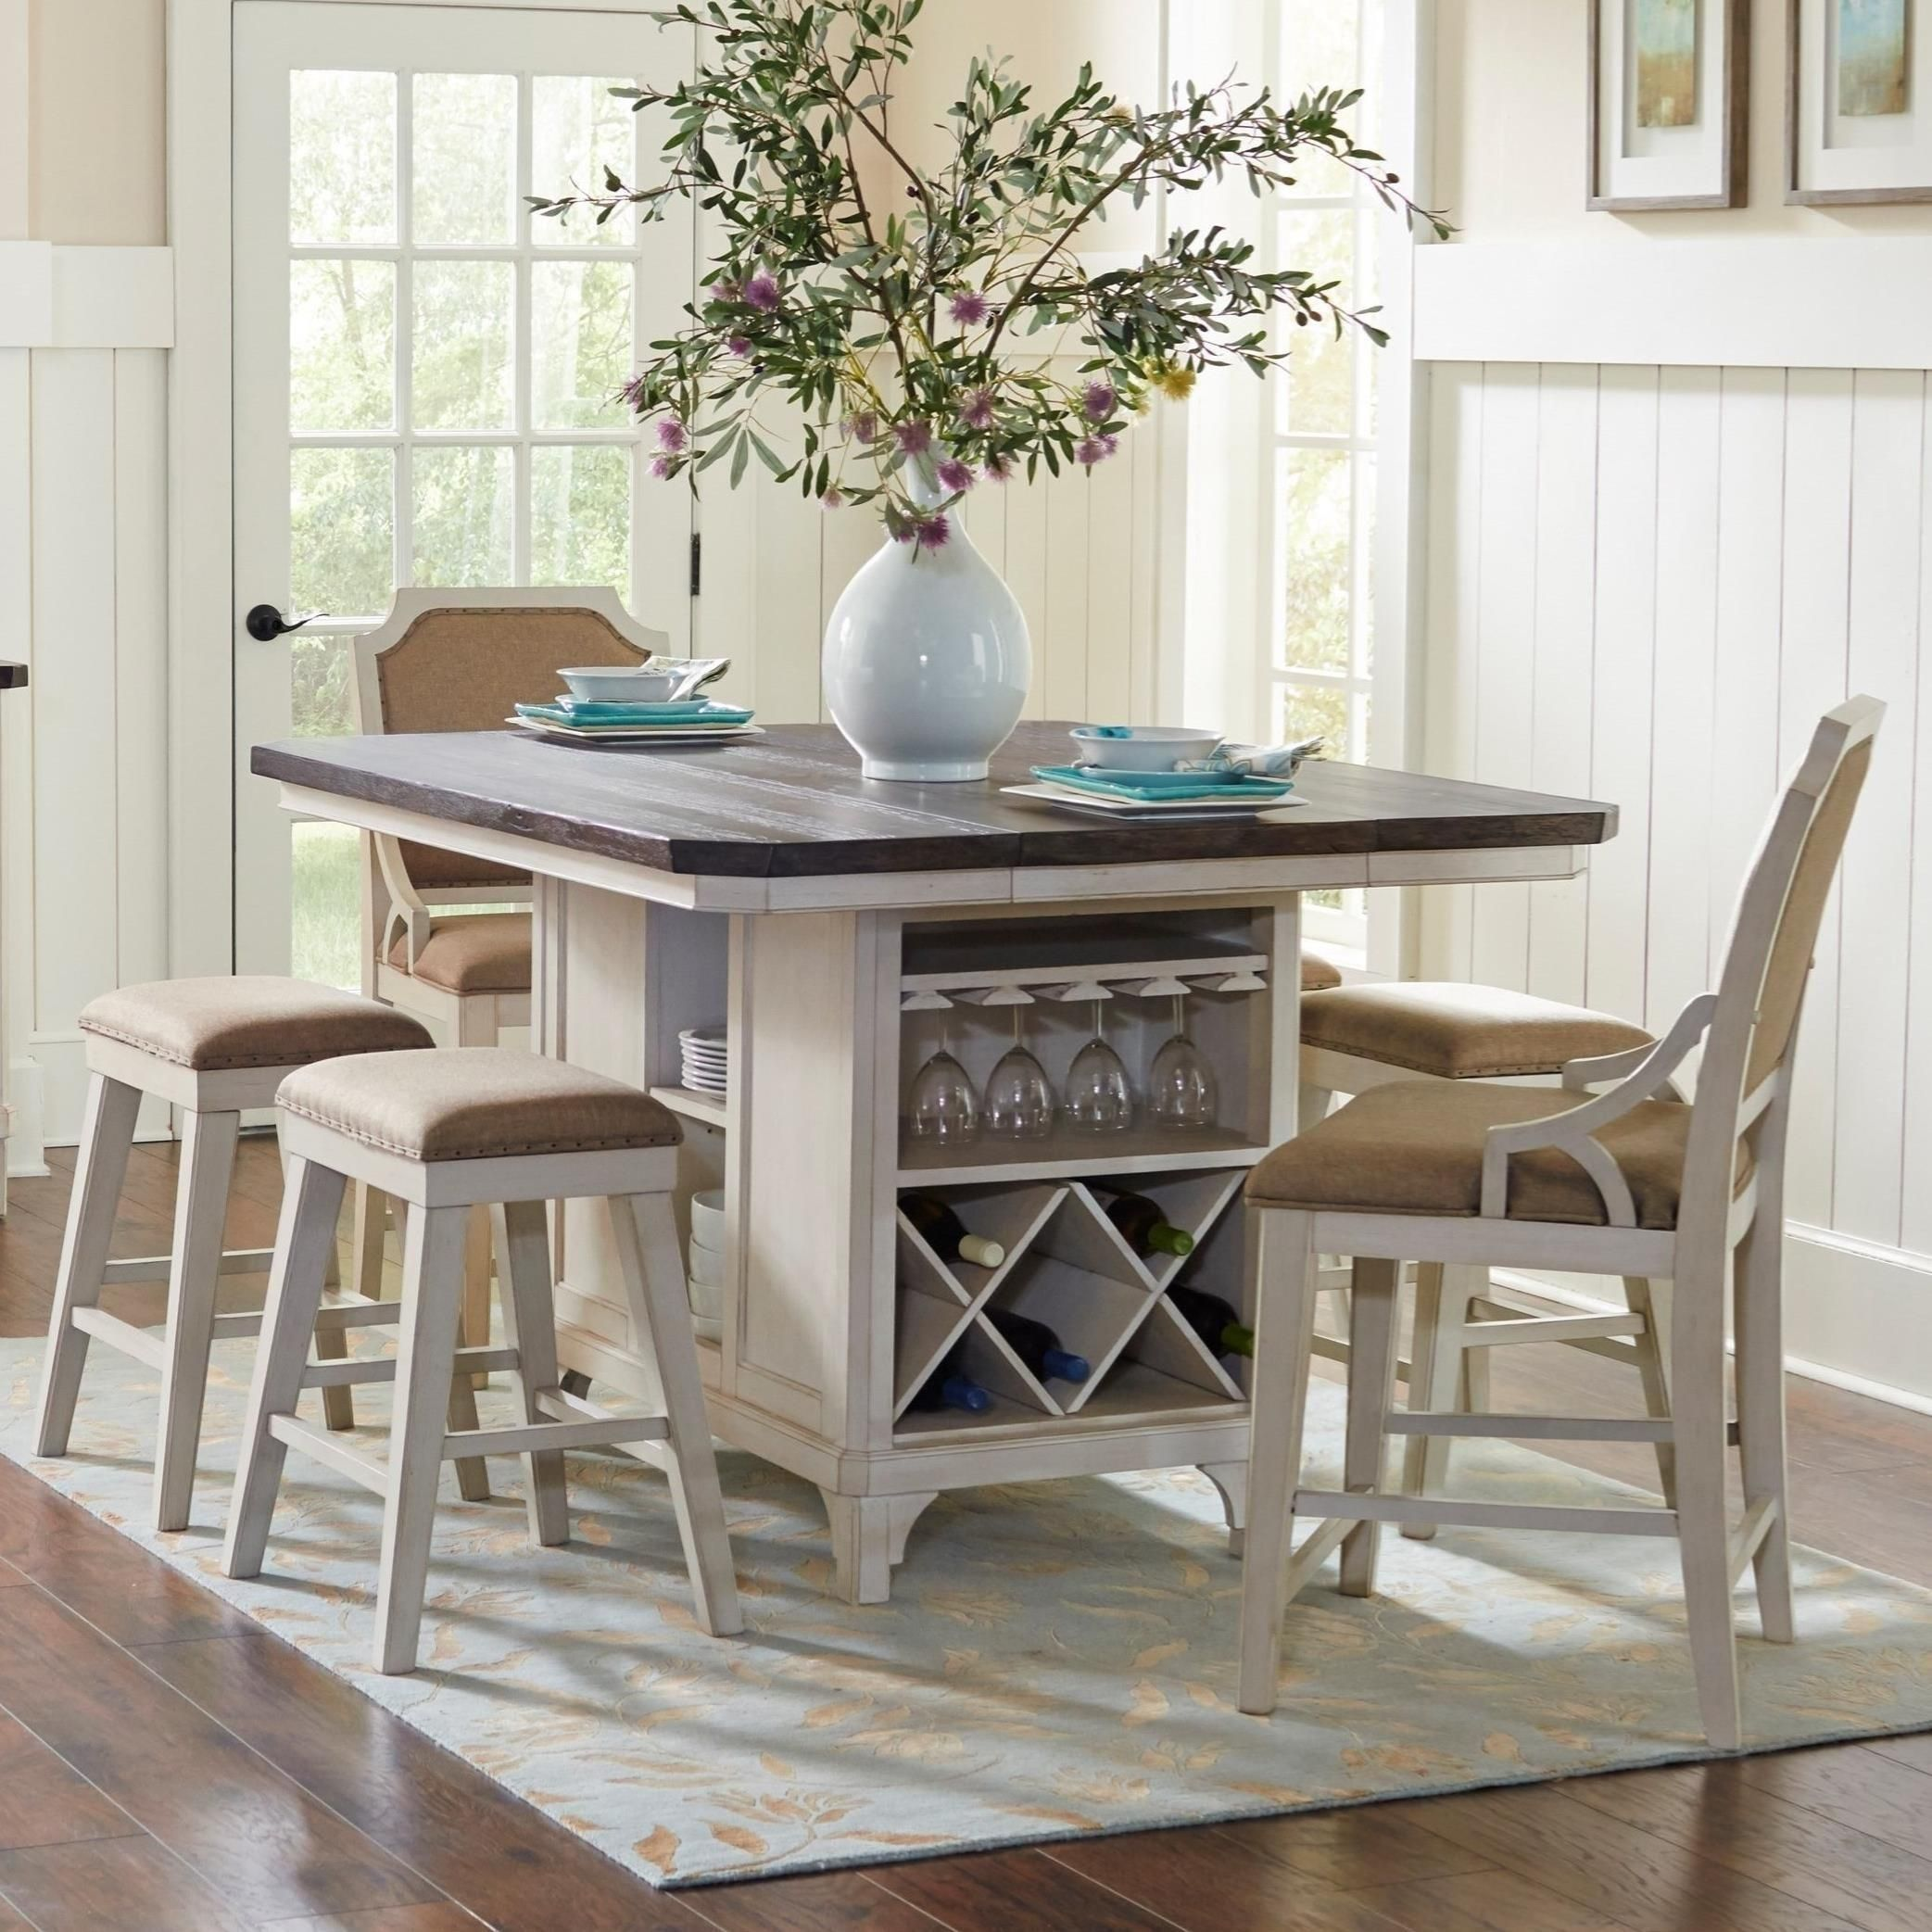 Find Kitchen Table With Storage Underneath You Can Never Have Too Much Storage With A Ki Kitchen Table With Storage Small Kitchen Tables Kitchen Island Table